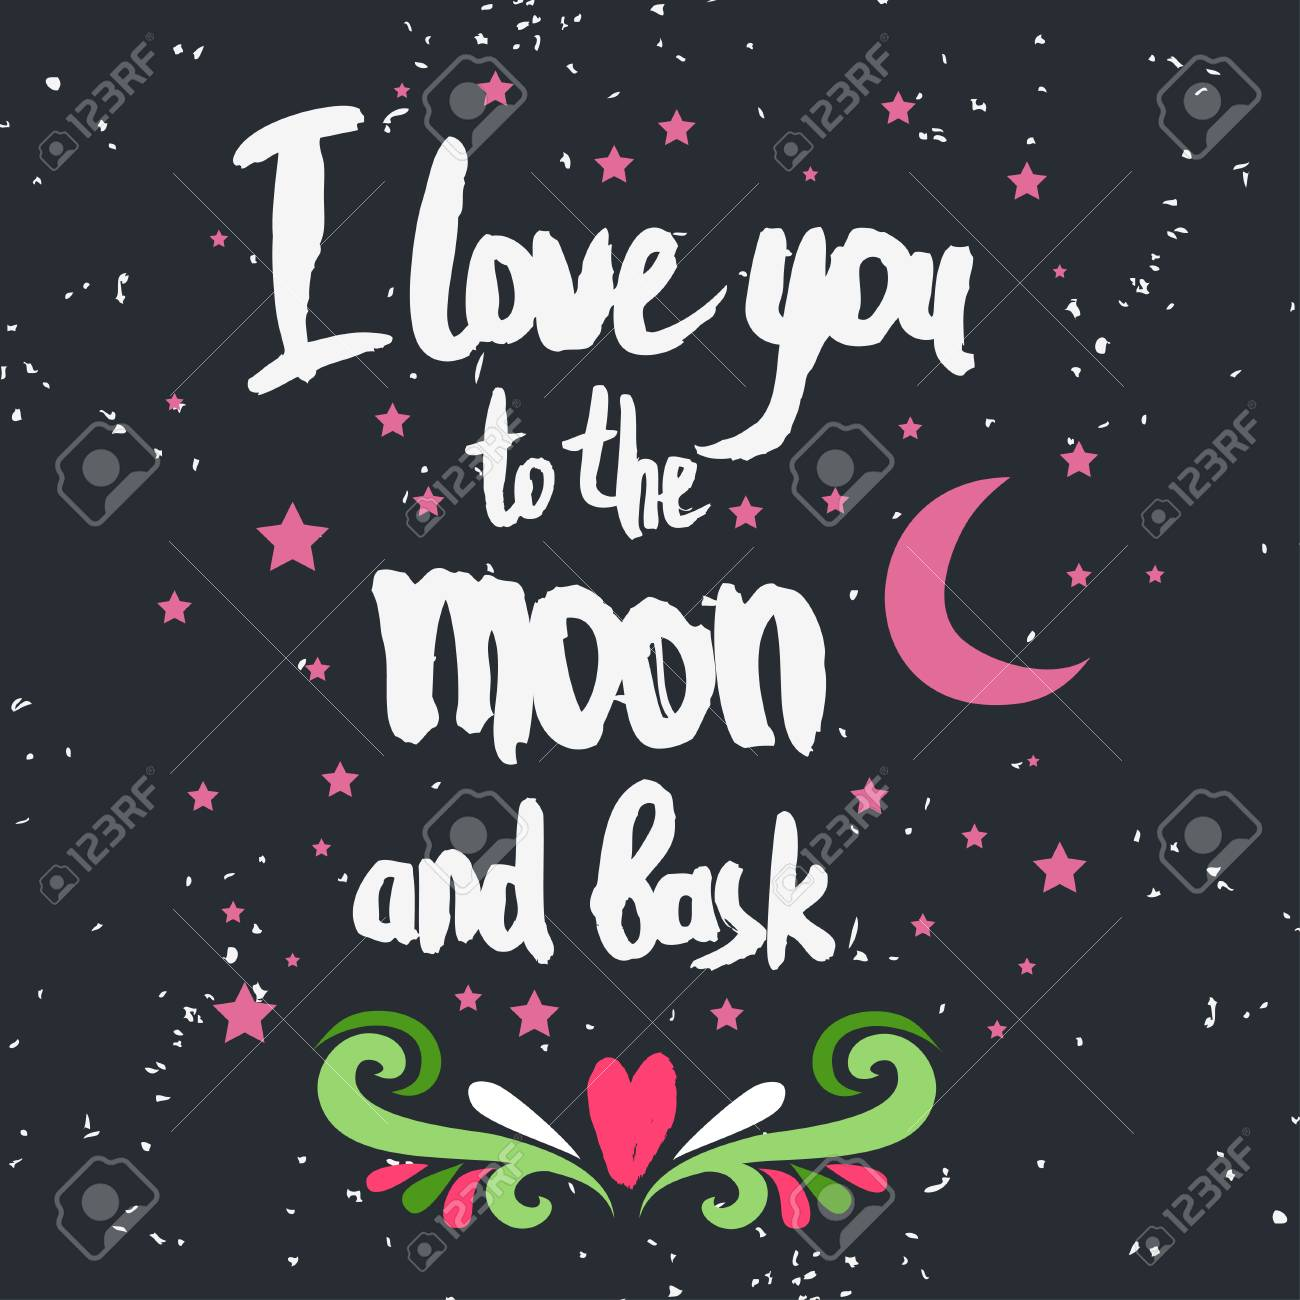 f8492bf1a Valentines day greeting card. I love you to the moon and back. Lettering,  calligraphy and typography. Made with ink and brush. Print on t-shirts and  bags, ...